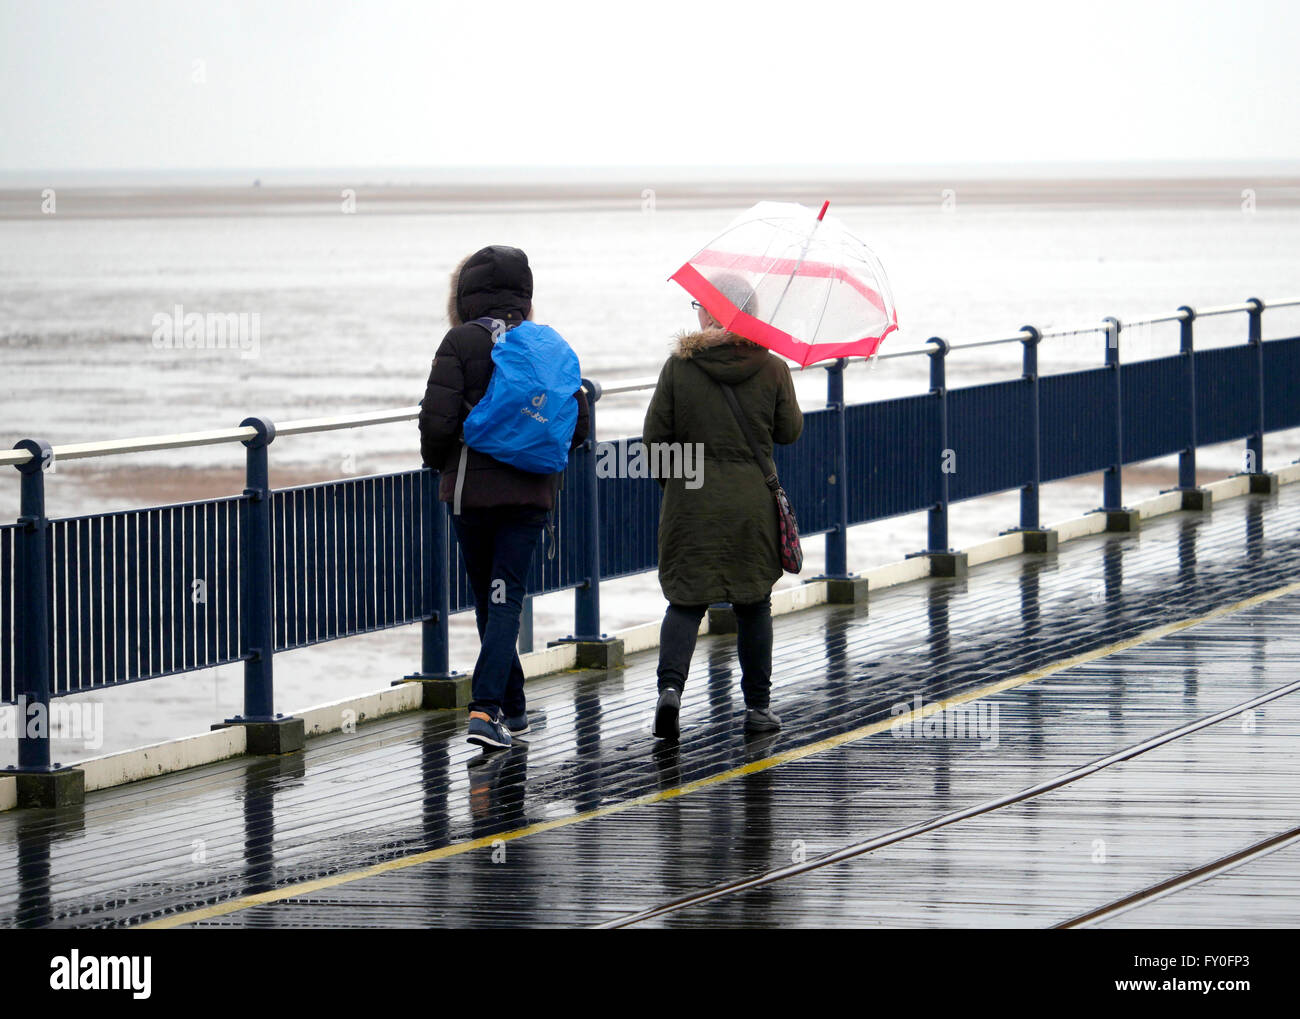 Weather Southport Merseyside UK. 2 April 2016. People out and about on a rainy Saturday in Southport Merseyside - Stock Image